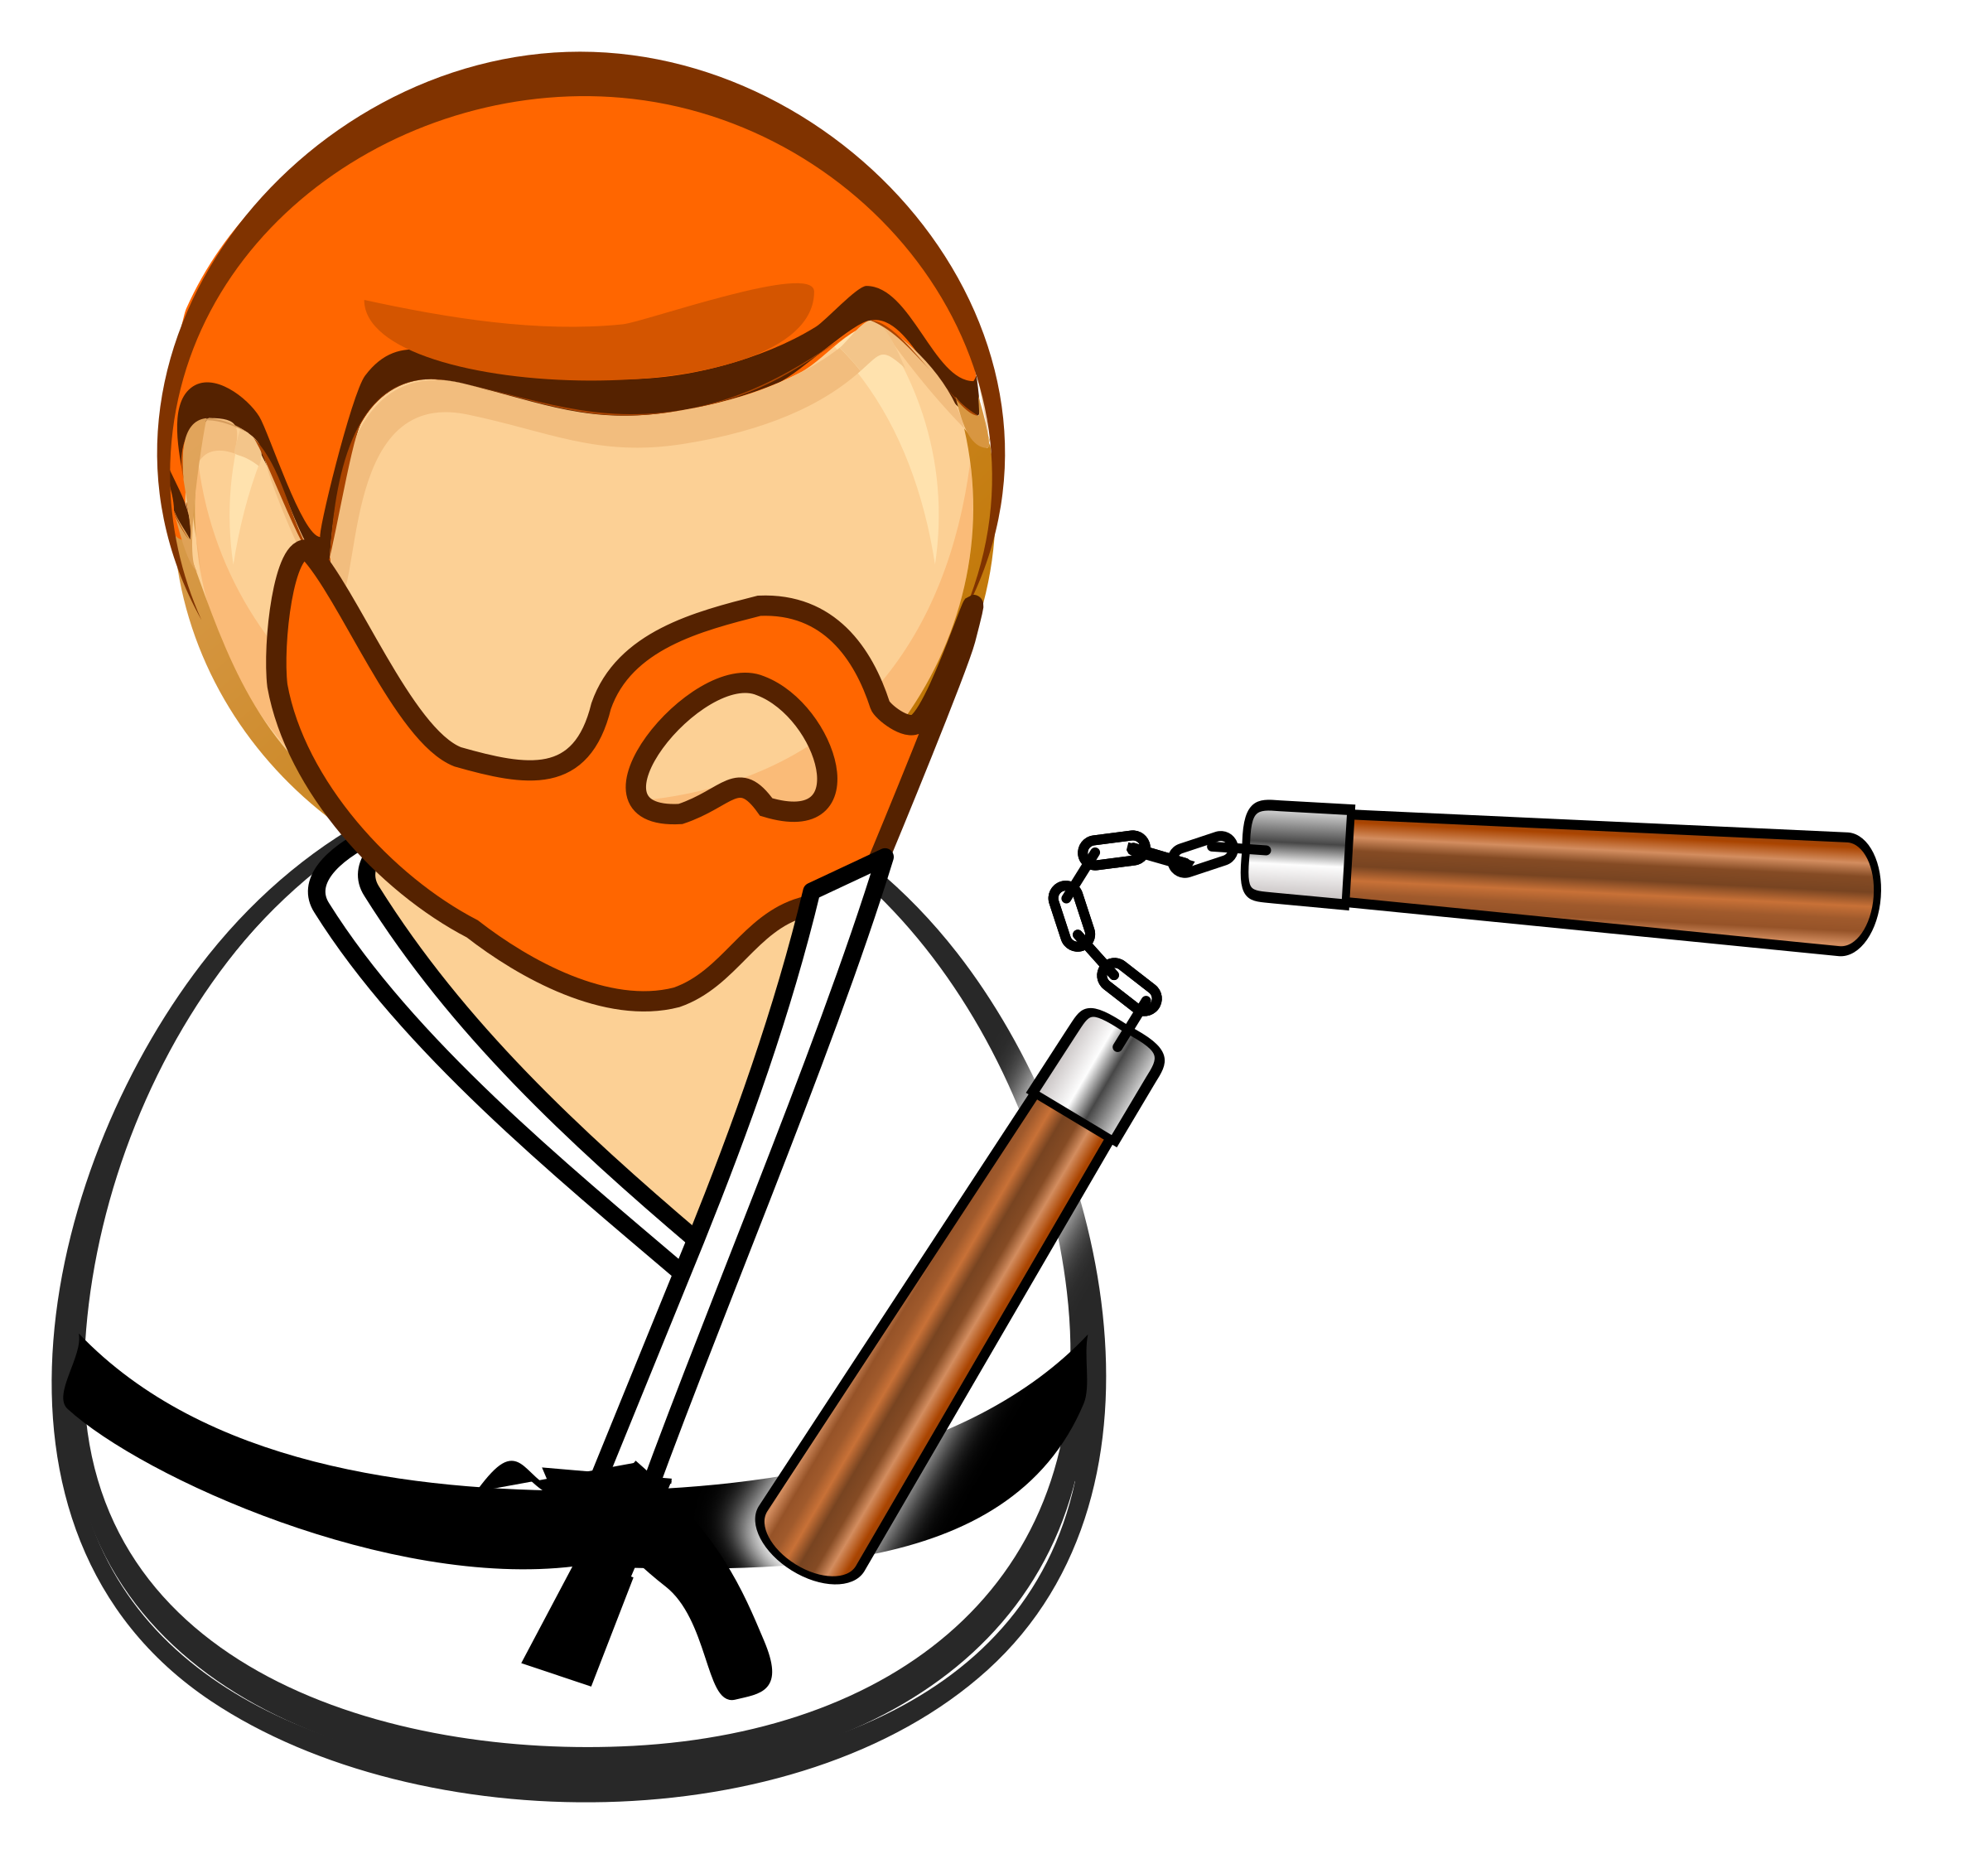 Confused clipart daunting. Chuck norris cartoon vector